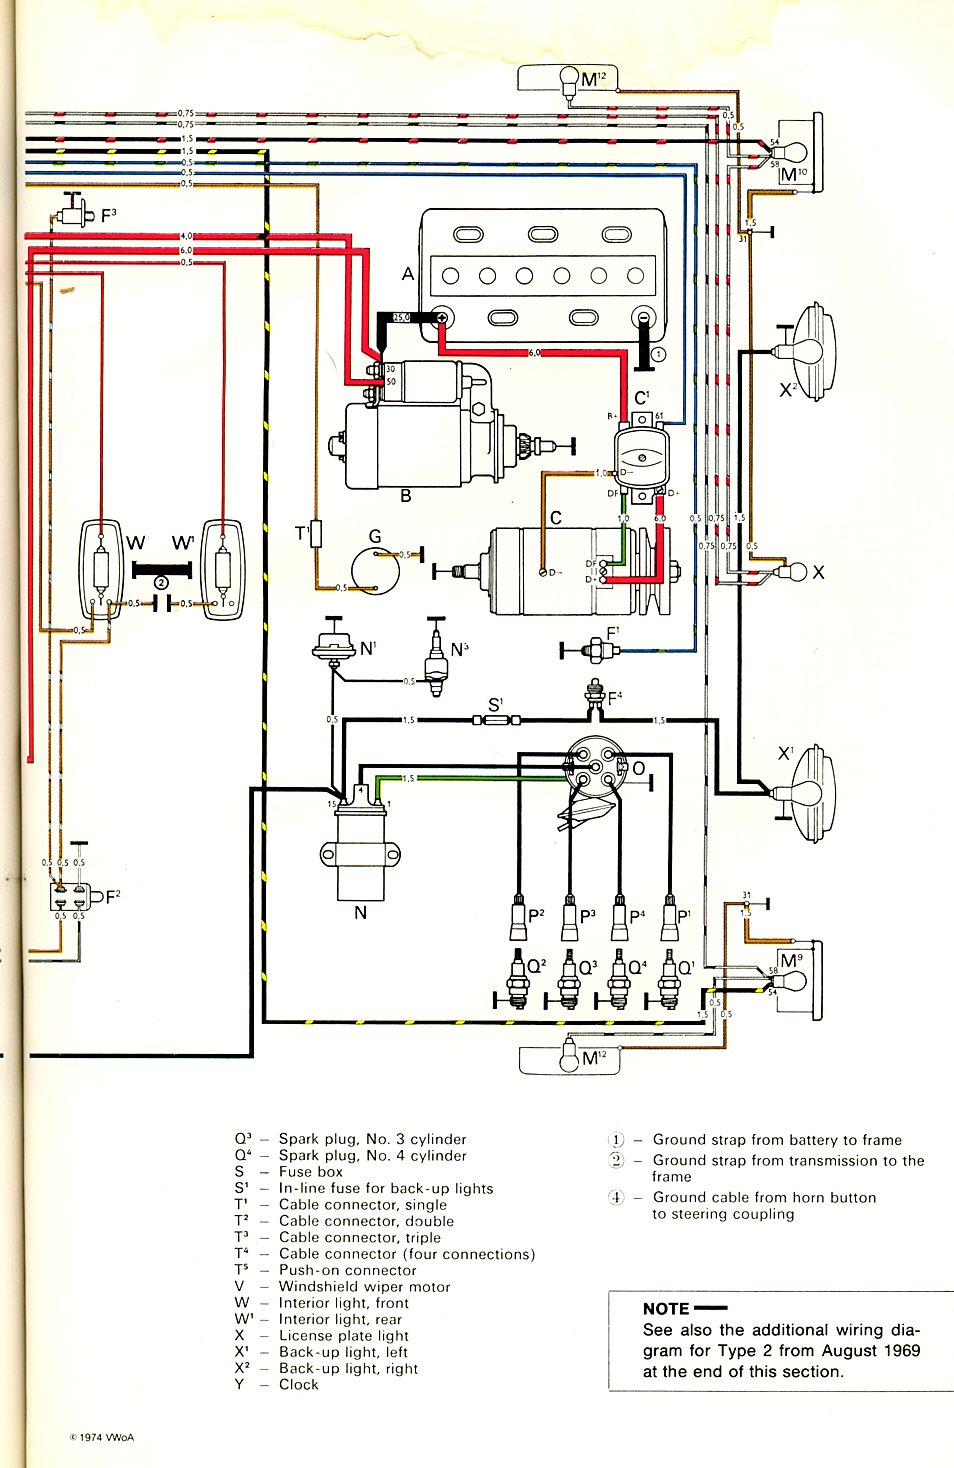 International Bus Fuel Gauge Wiring Diagram likewise 7pi6i Hi Need Help International 2004 Dt466 Engine Automatic likewise Sigtrouble further In A C5 Corvette Gas Tank Location Besides as well Maxxforce 10 Oil Pressure Sensor Location. on 2003 international 4300 wiring diagram